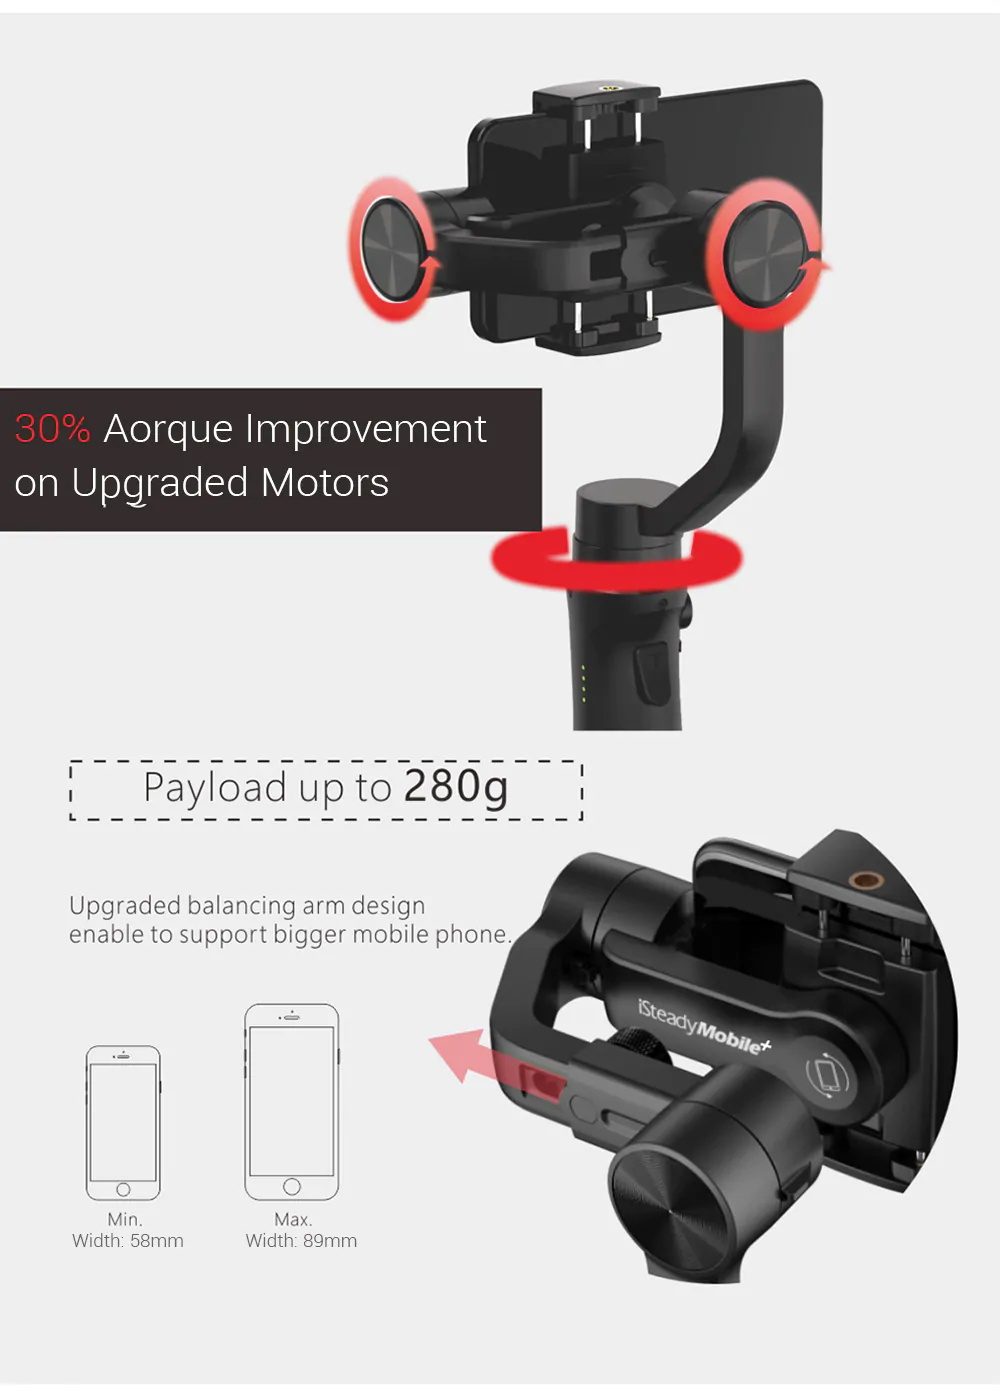 new hohem isteady mobile plus handheld gimbal stabilizer